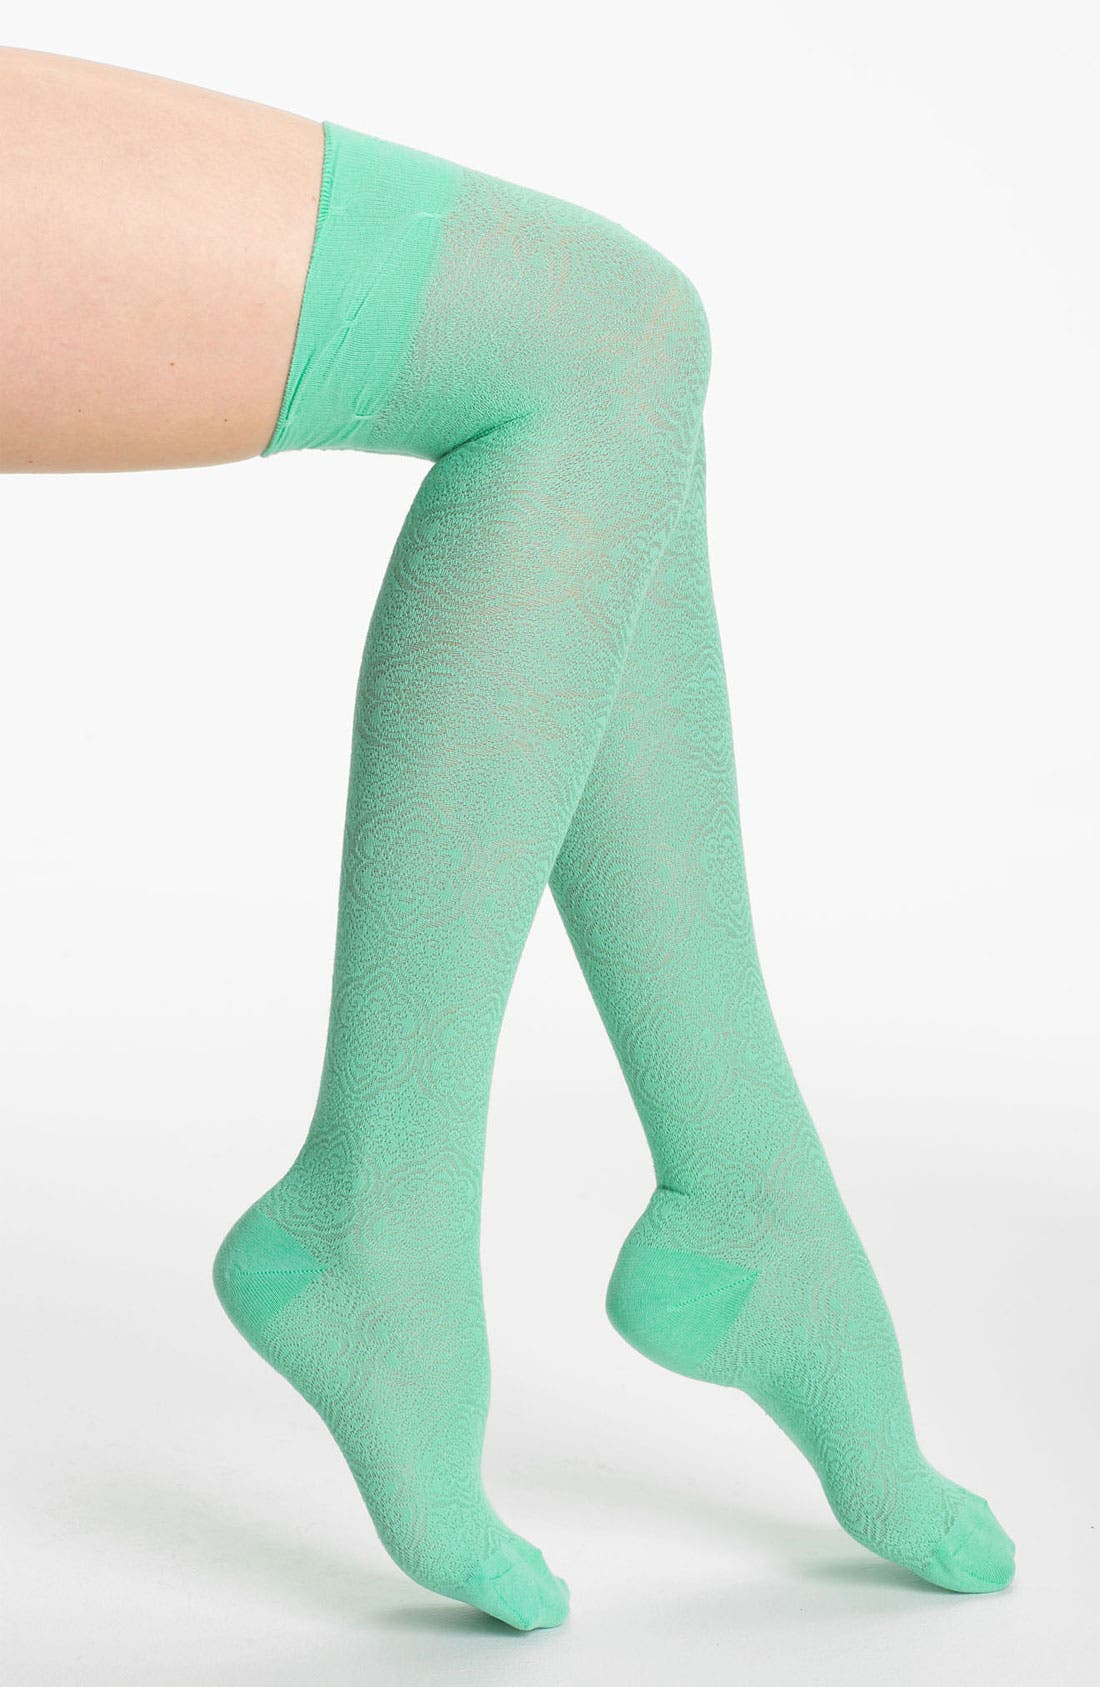 Alternate Image 1 Selected - Nordstrom 'Pattern Play' Over the Knee Socks